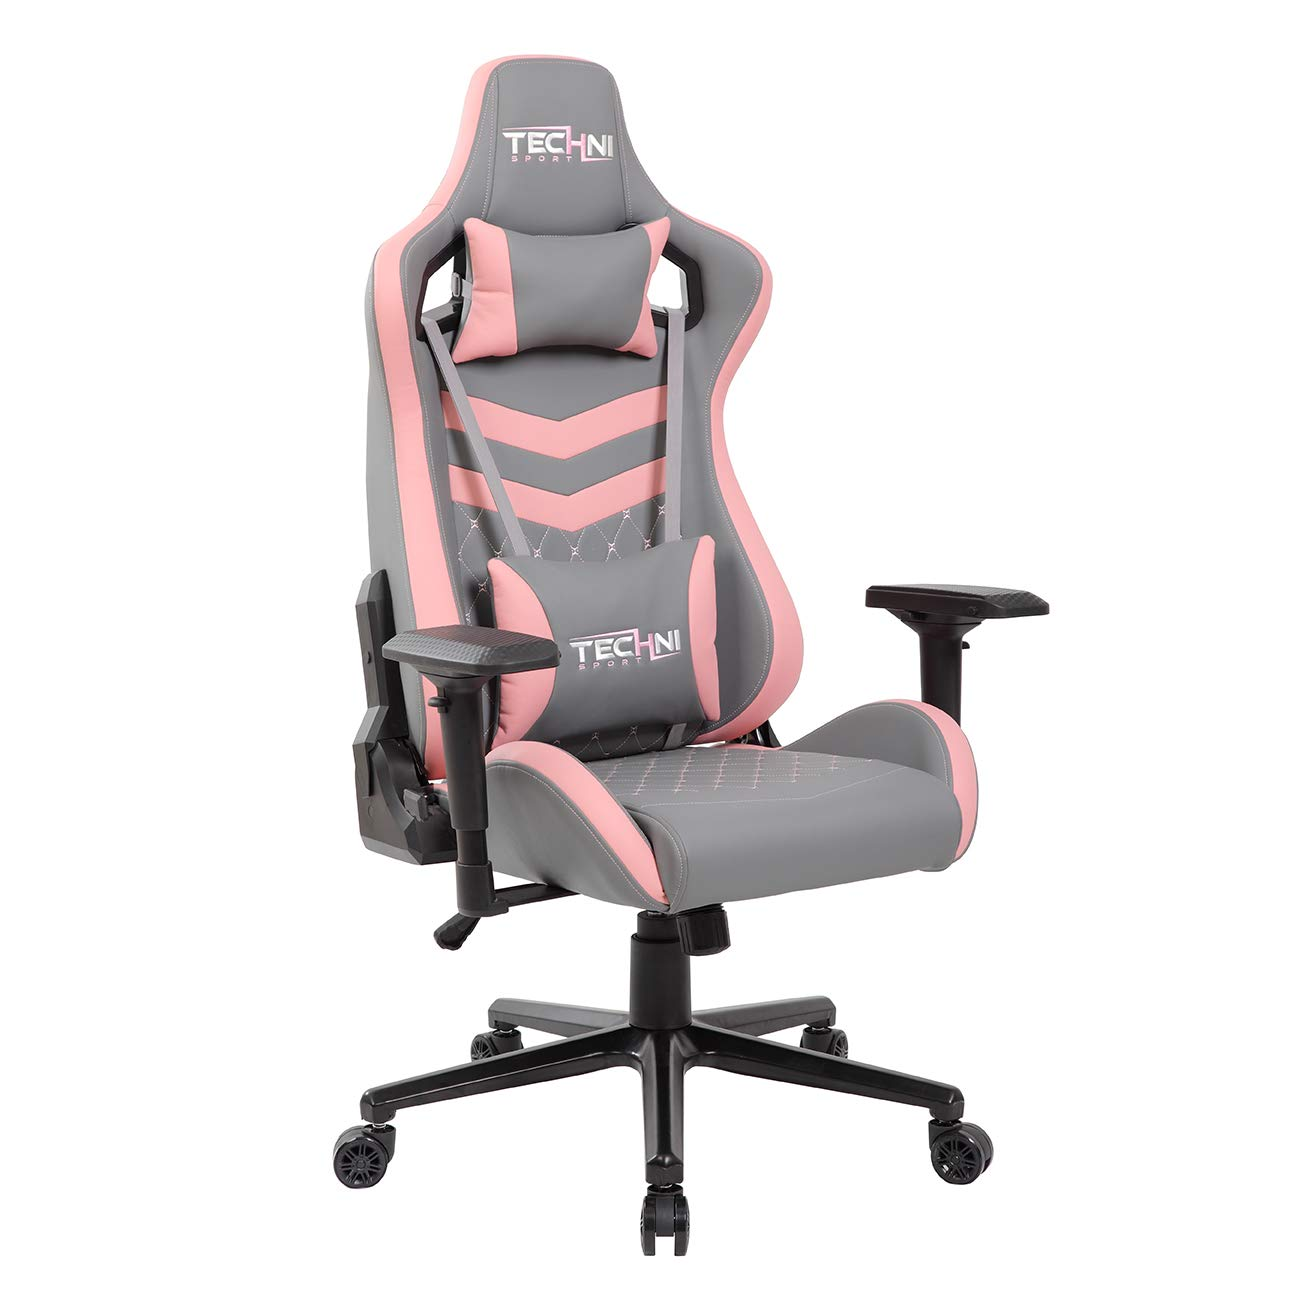 TECHNI SPORT Gaming Chair Collection - Office Chair - Gaming Computer Chair - Recliner Chair - Back Support - Ergonomic & Adjustable - Lumbar Support Leather Gaming Chair (TS83, Grey & Pink) by Techni Sport